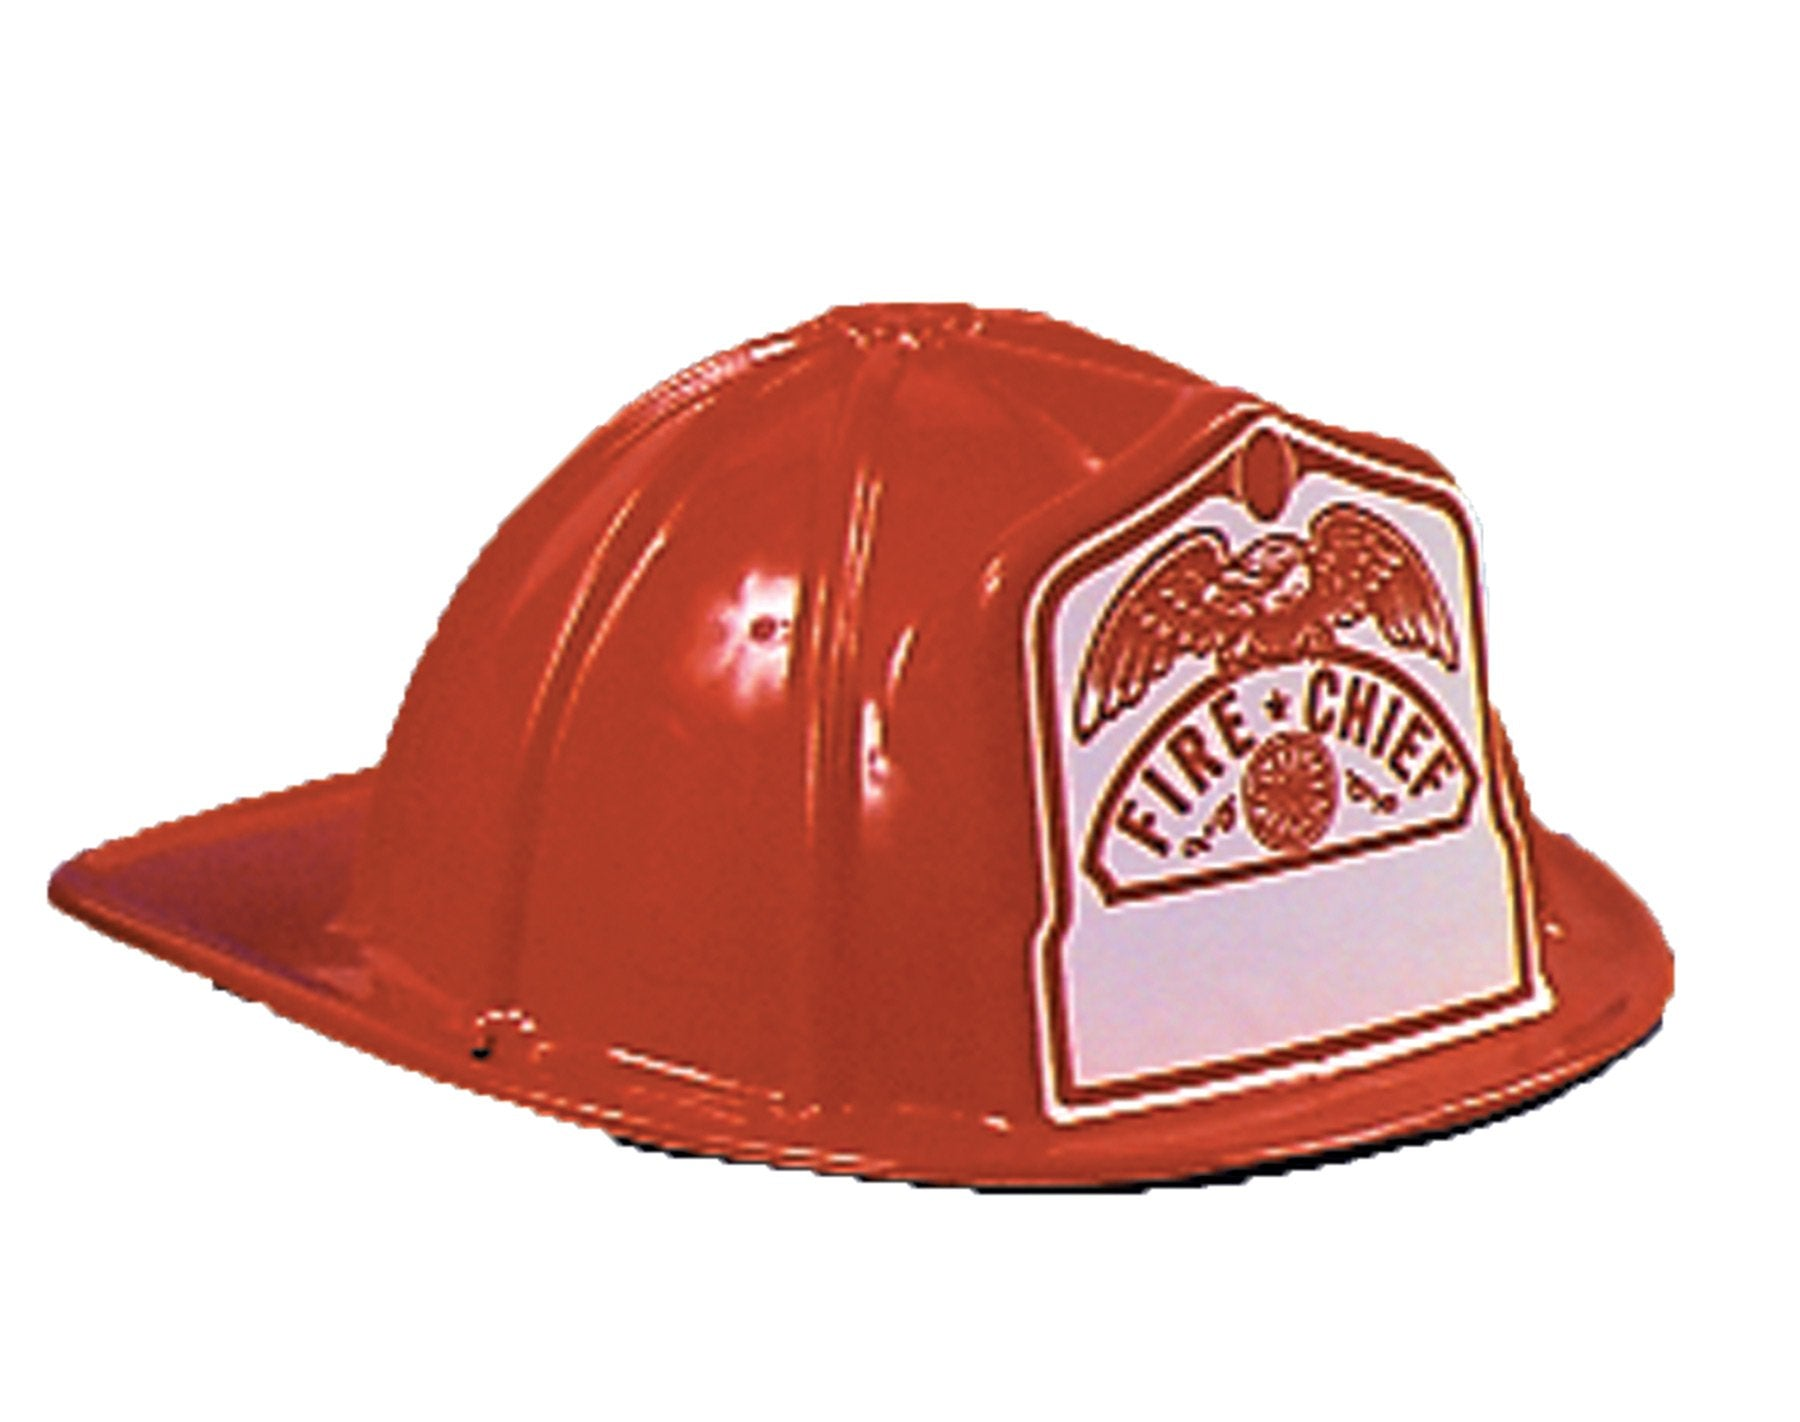 Fire Fighter Helmet Child Black